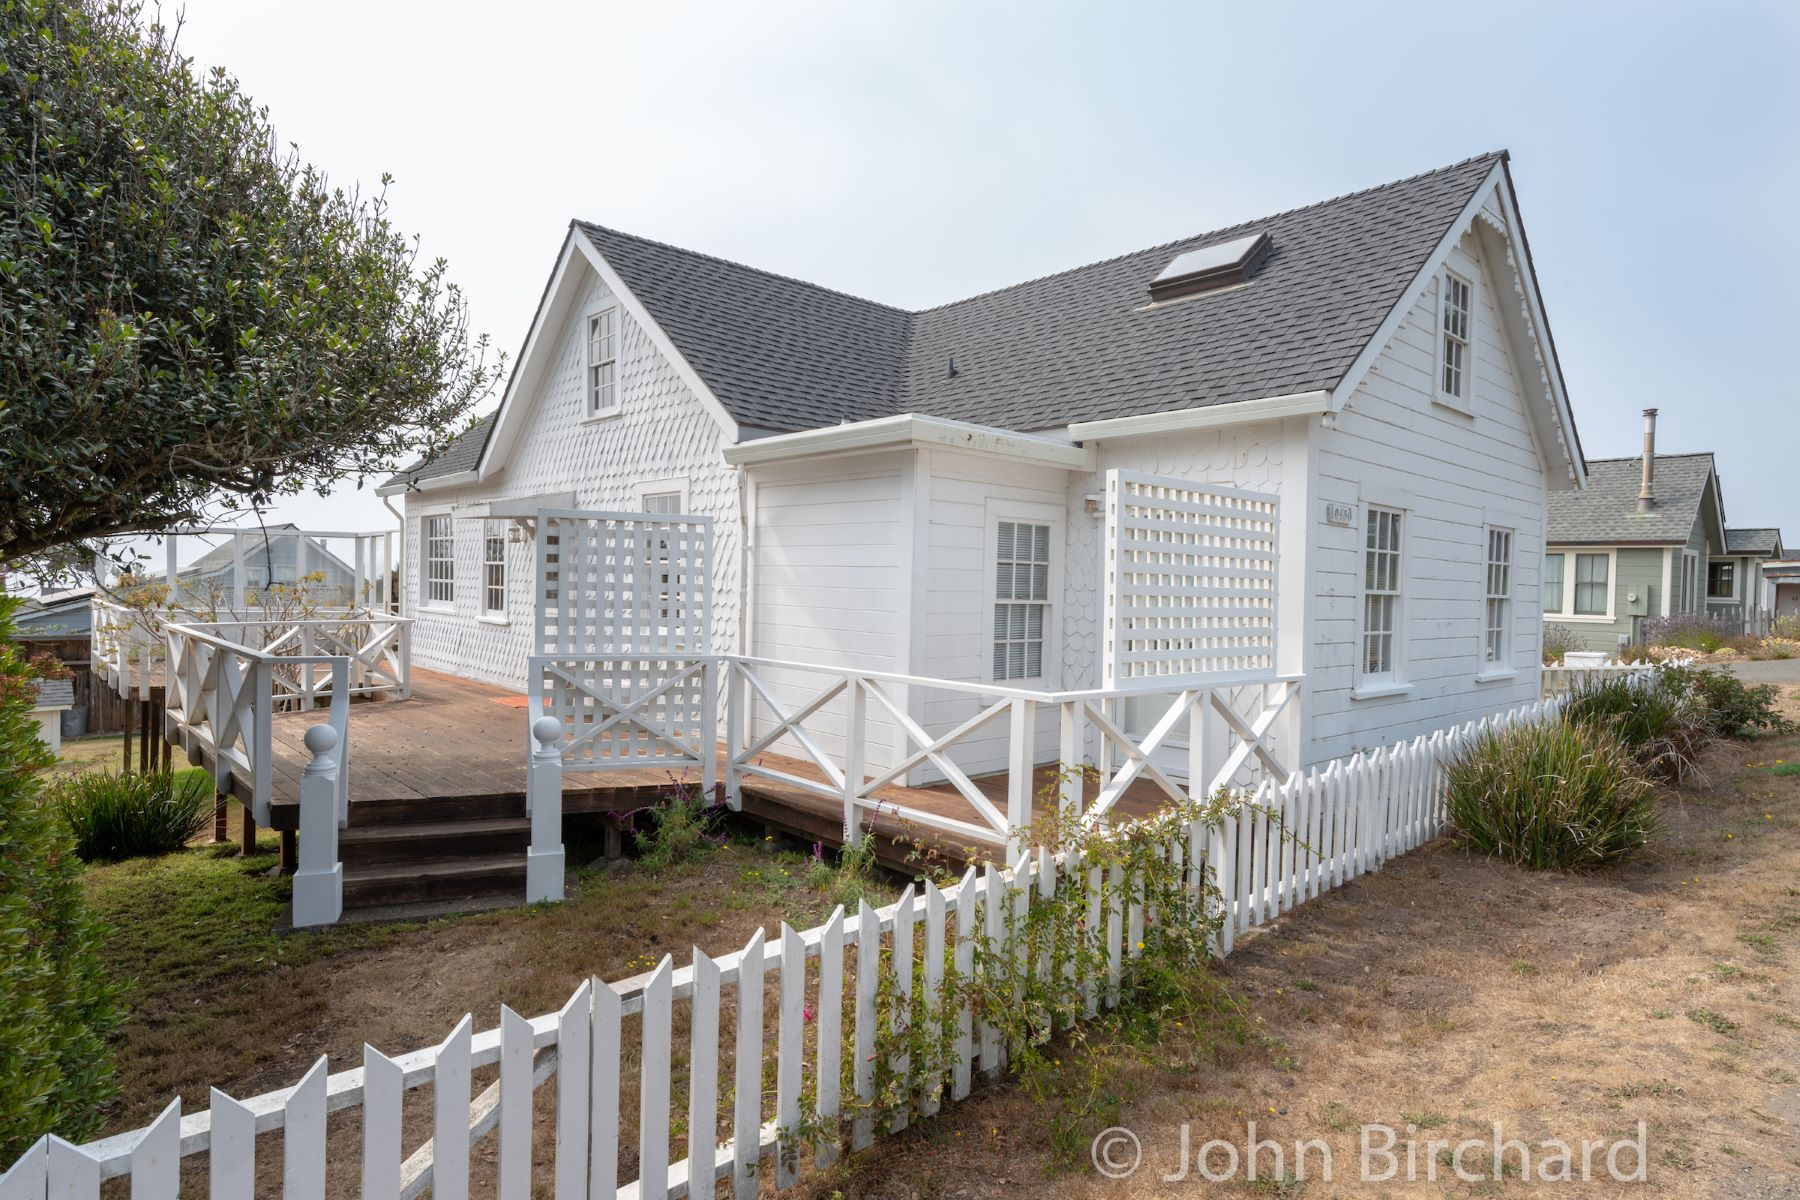 Property for Sale at Village Cape Cod 10450 Heeser Street Mendocino, California 95460 United States